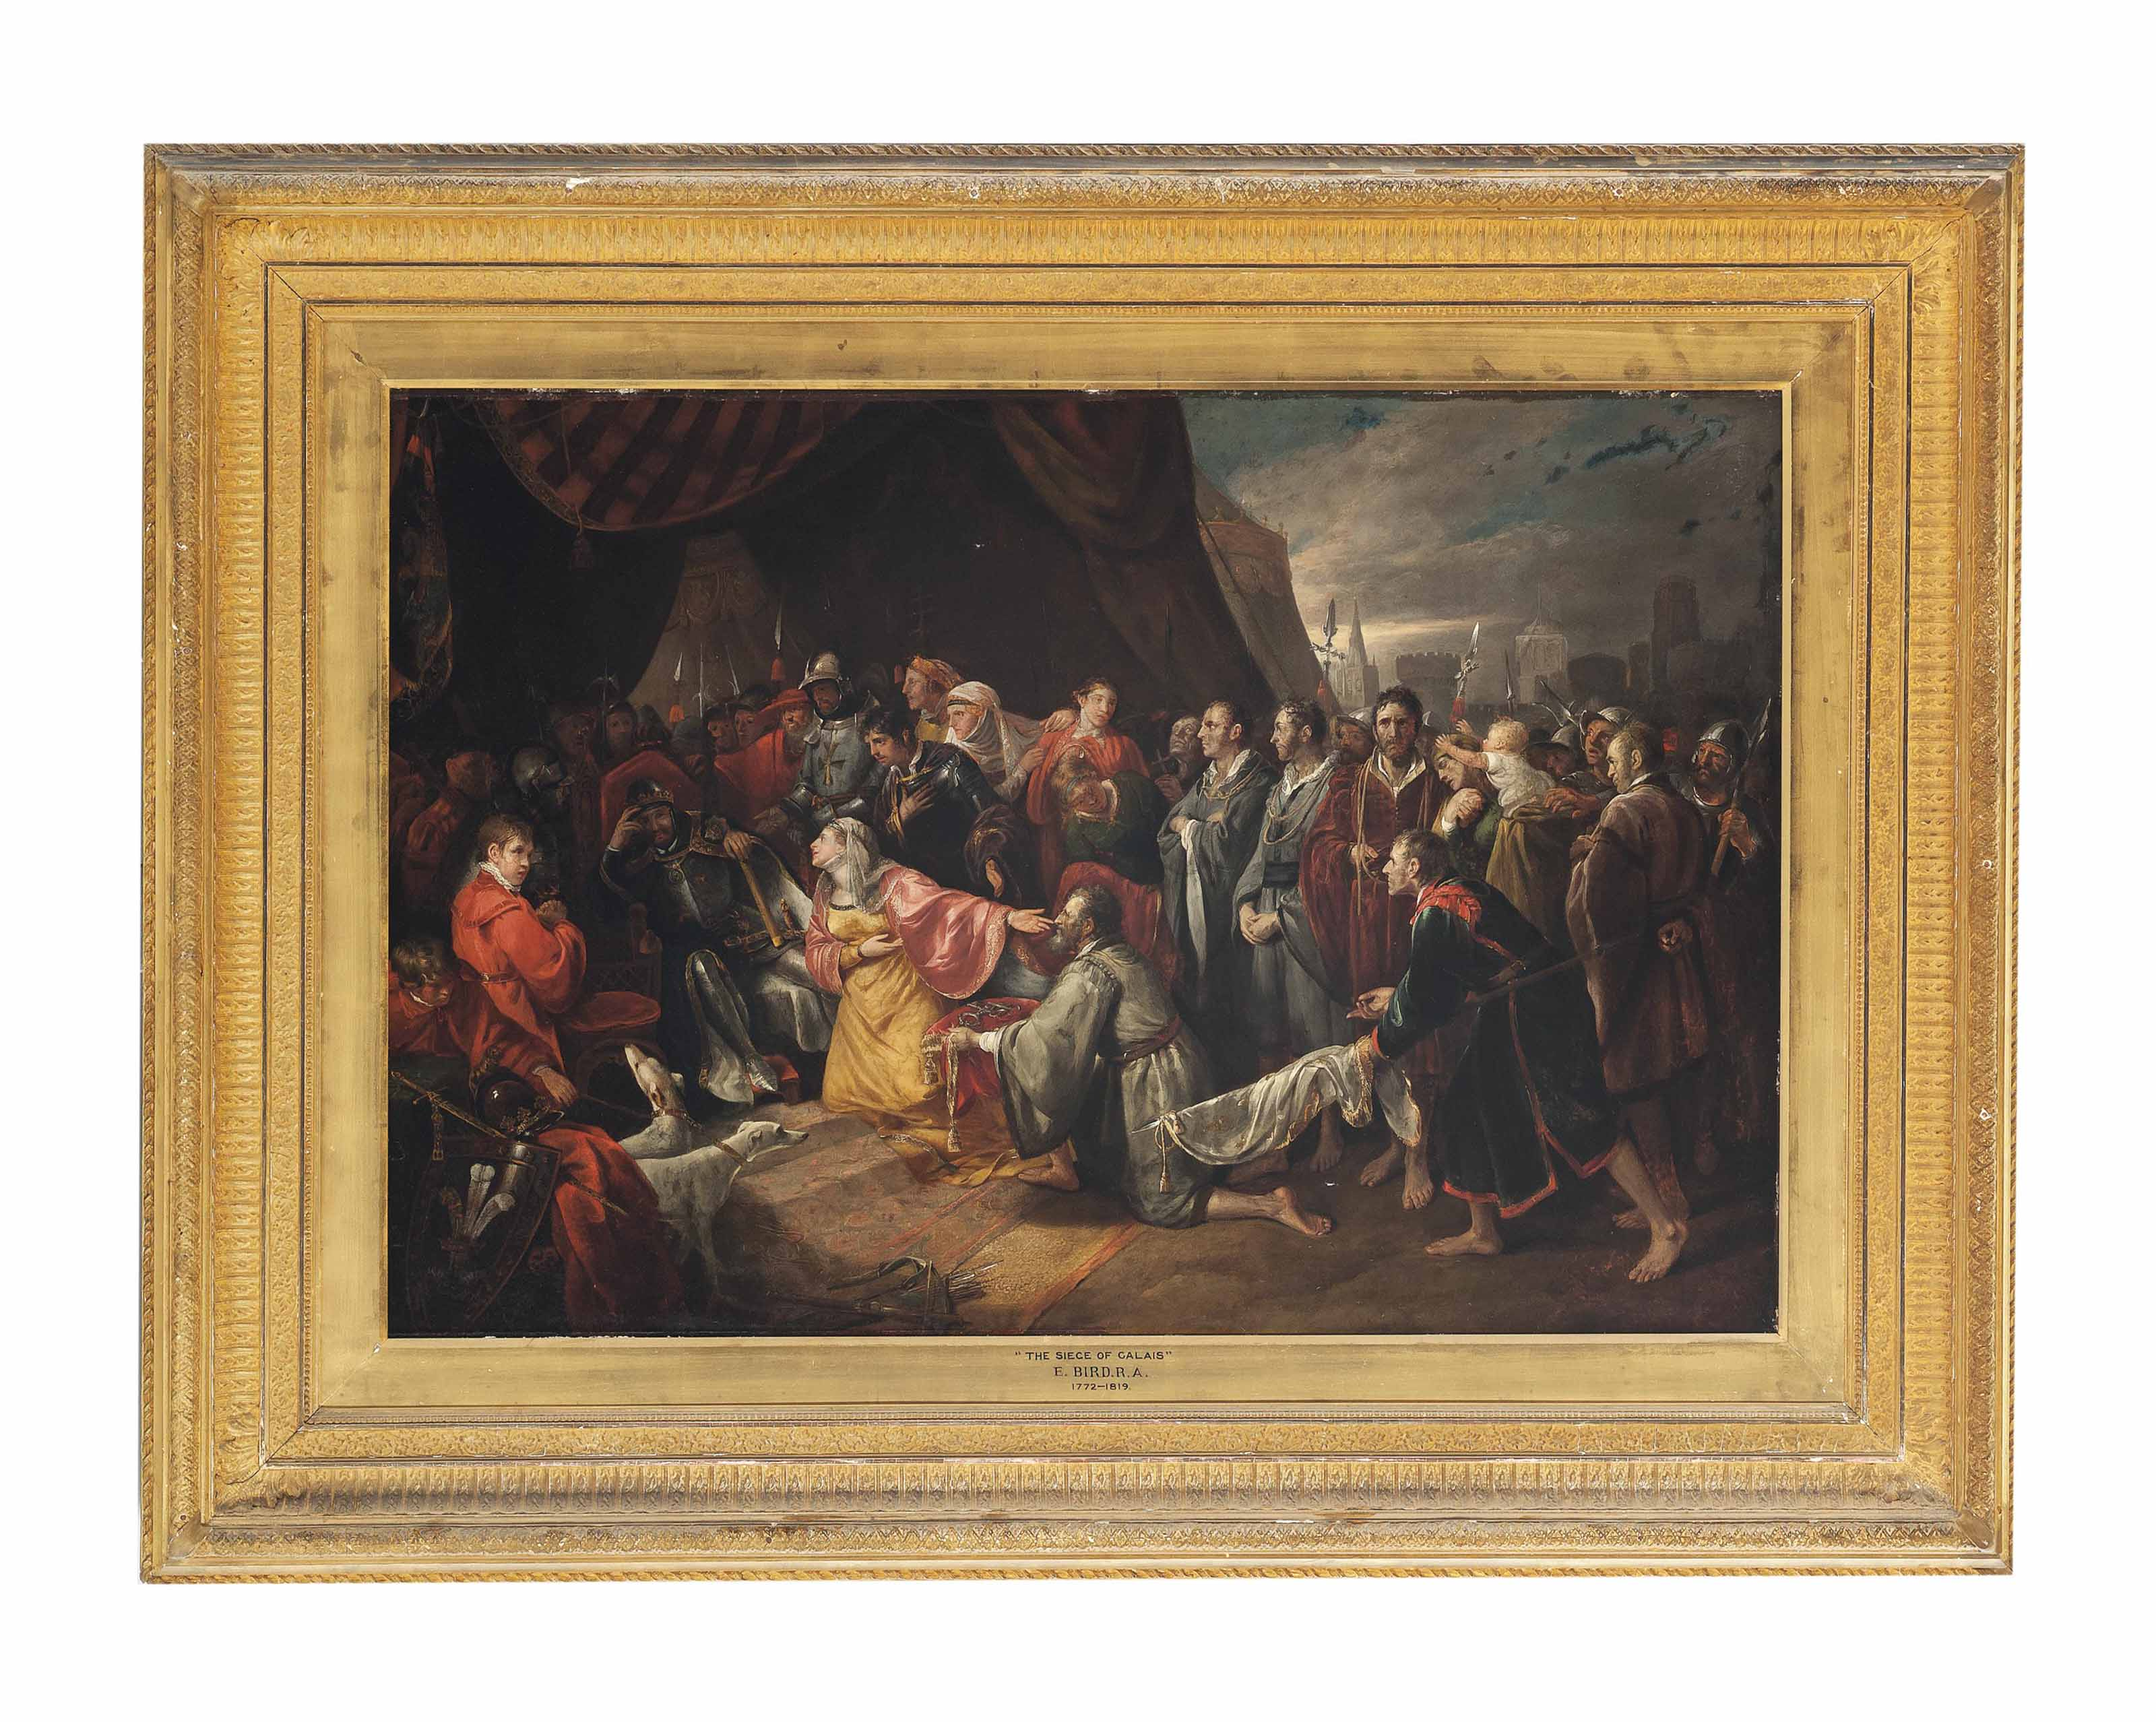 Queen Philippa supplicating King Edward to spare the lives of the six burghers of Calais